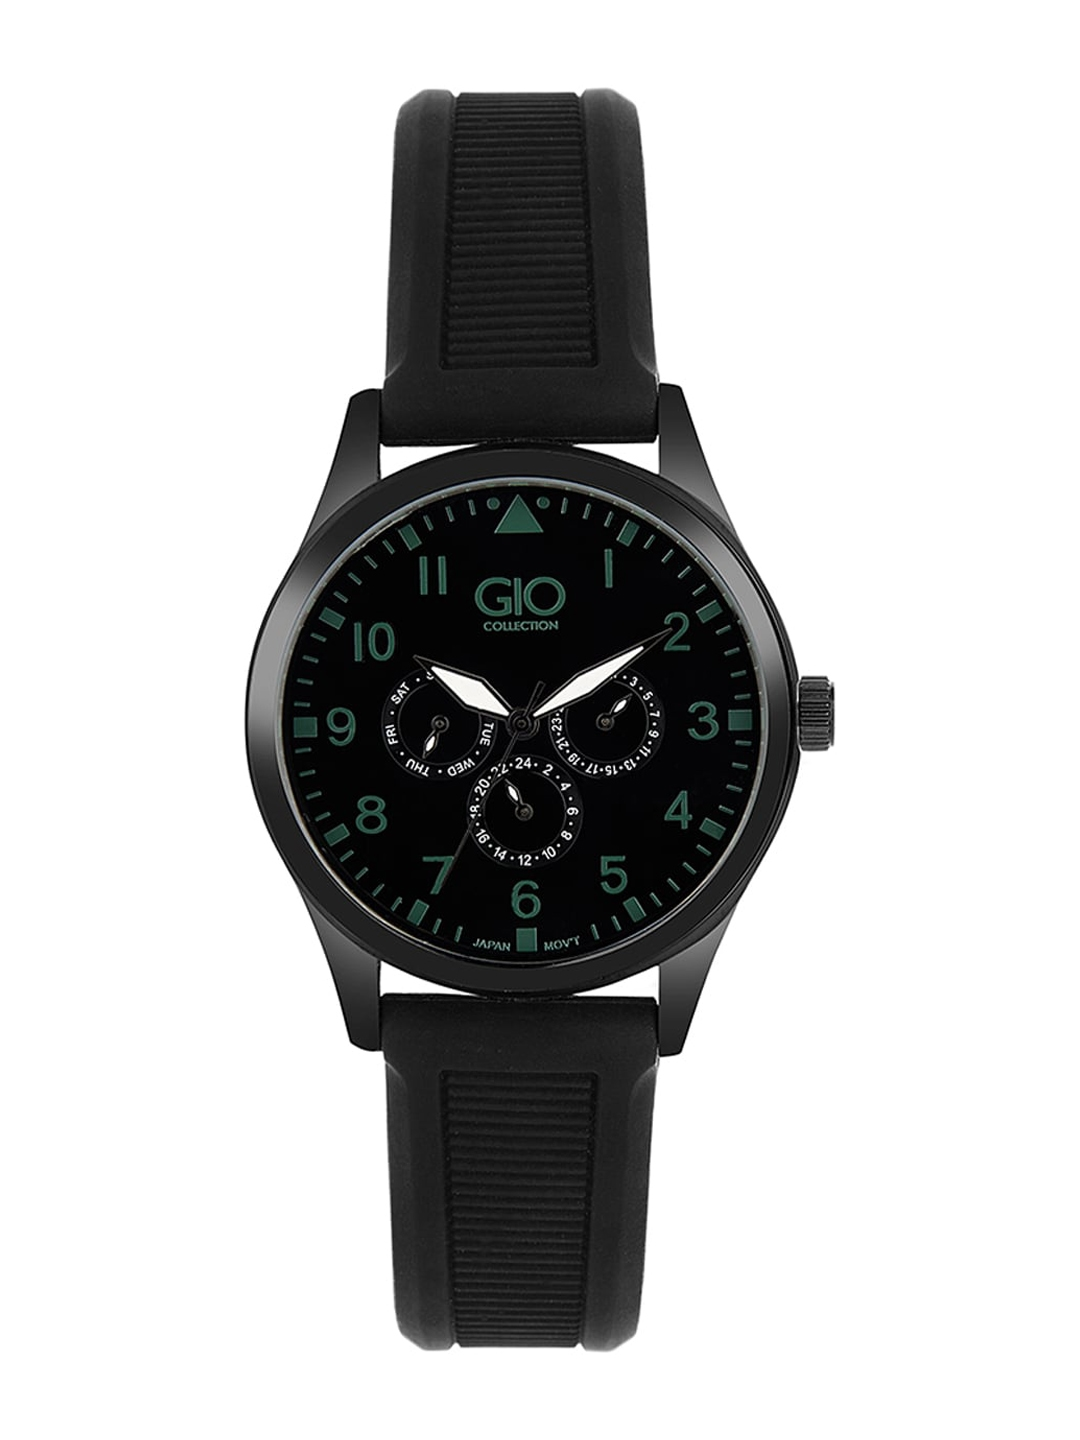 GIO COLLECTION Men Black Analogue Watch G0068 04X